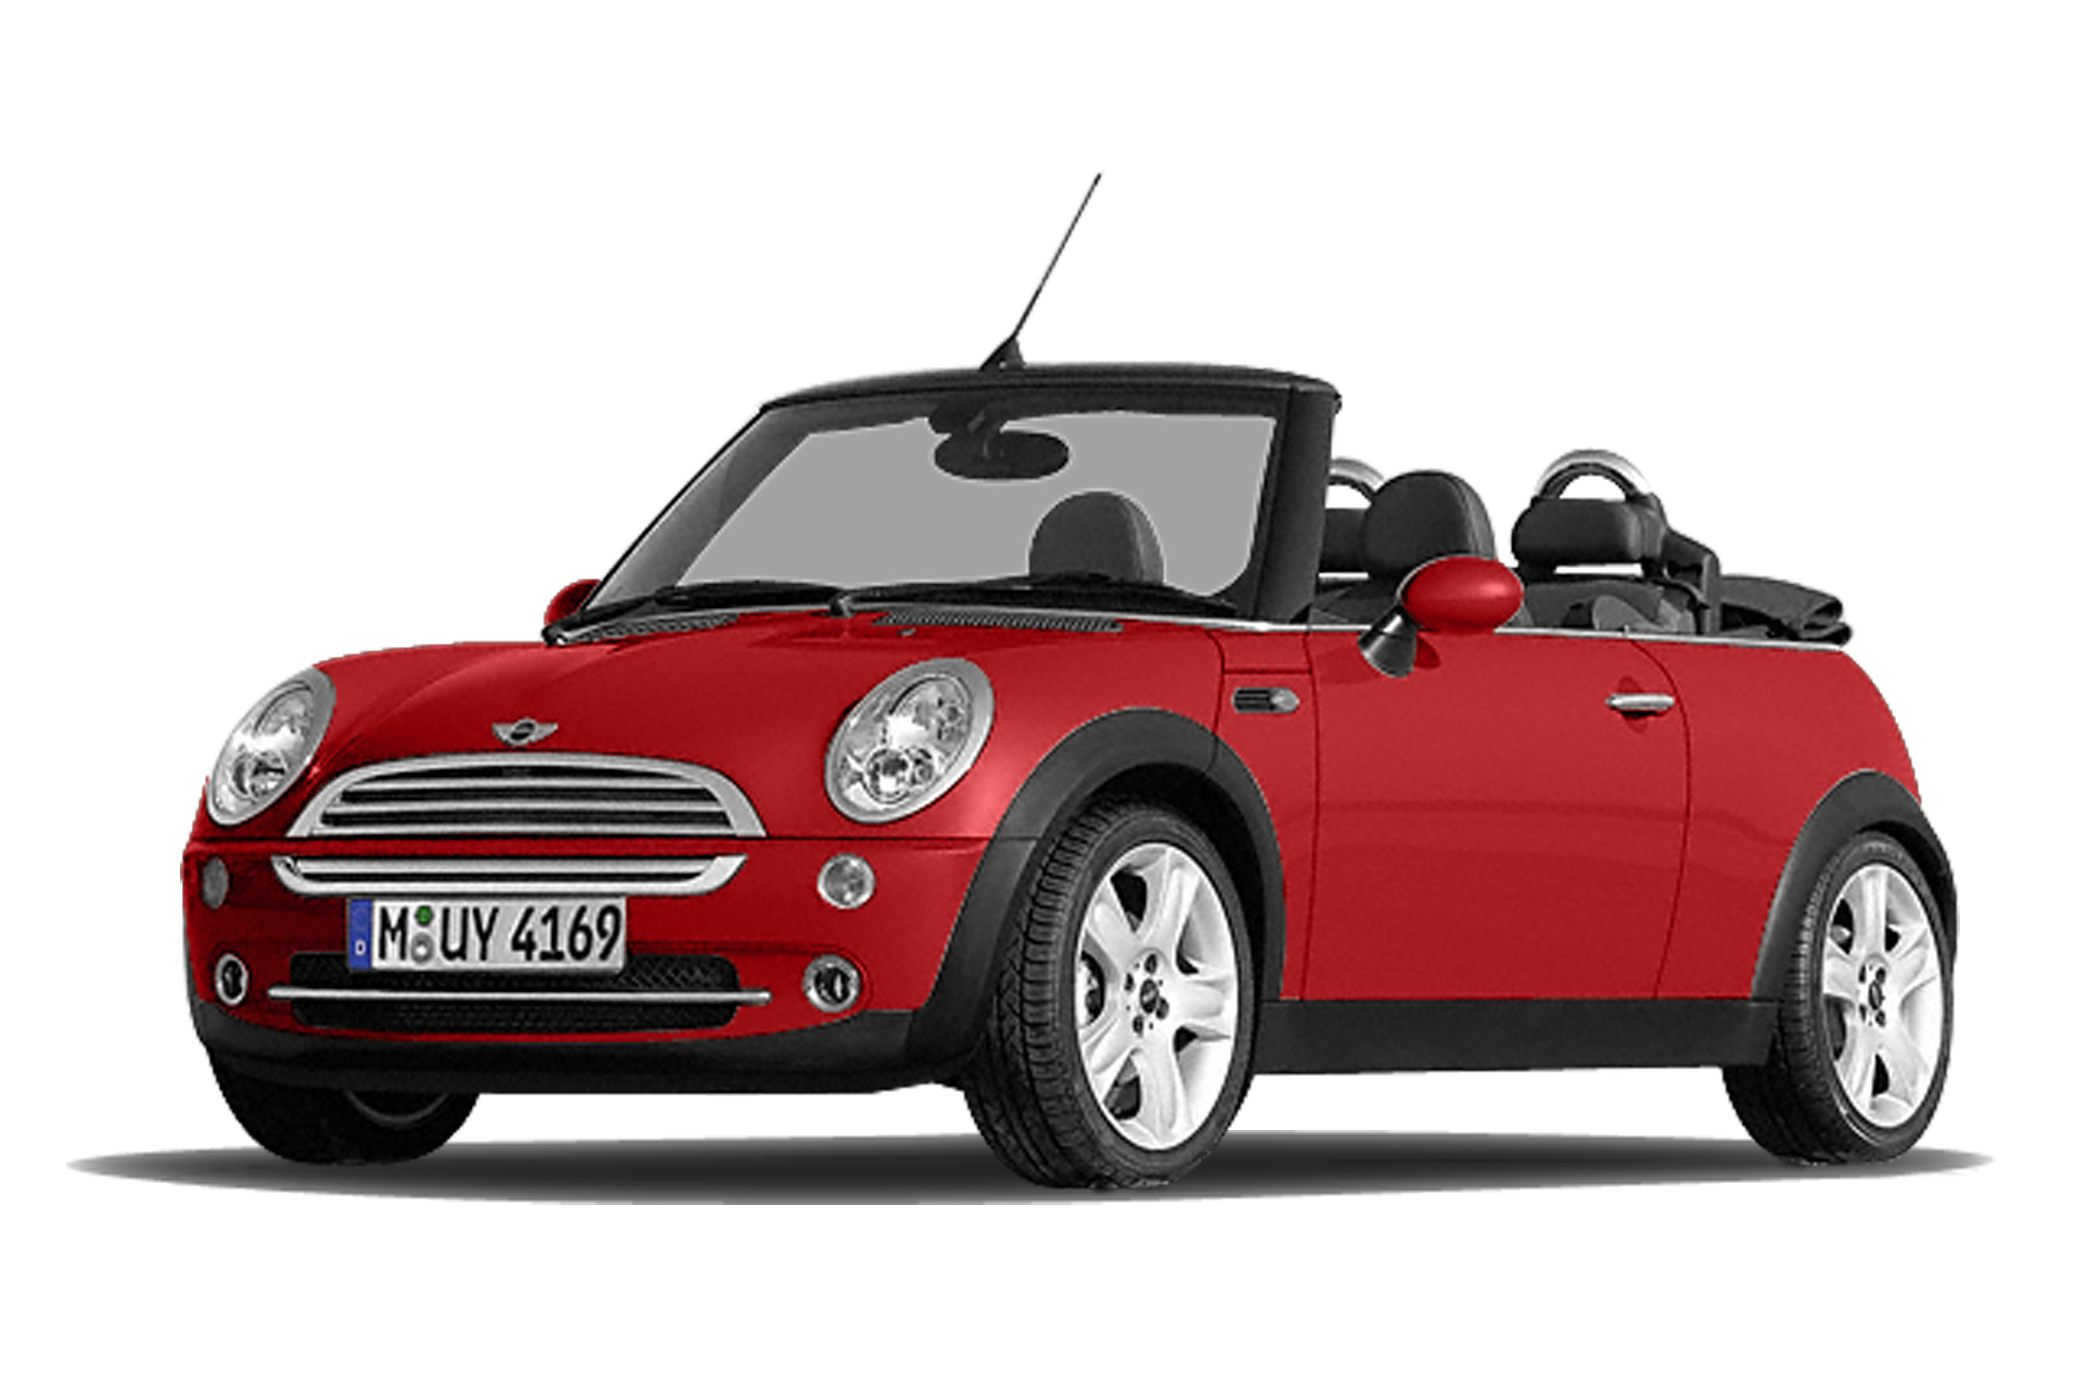 2007 MINI Cooper Base dreaming about for a great deal on a fabulous Convertible Vehicle Well weve